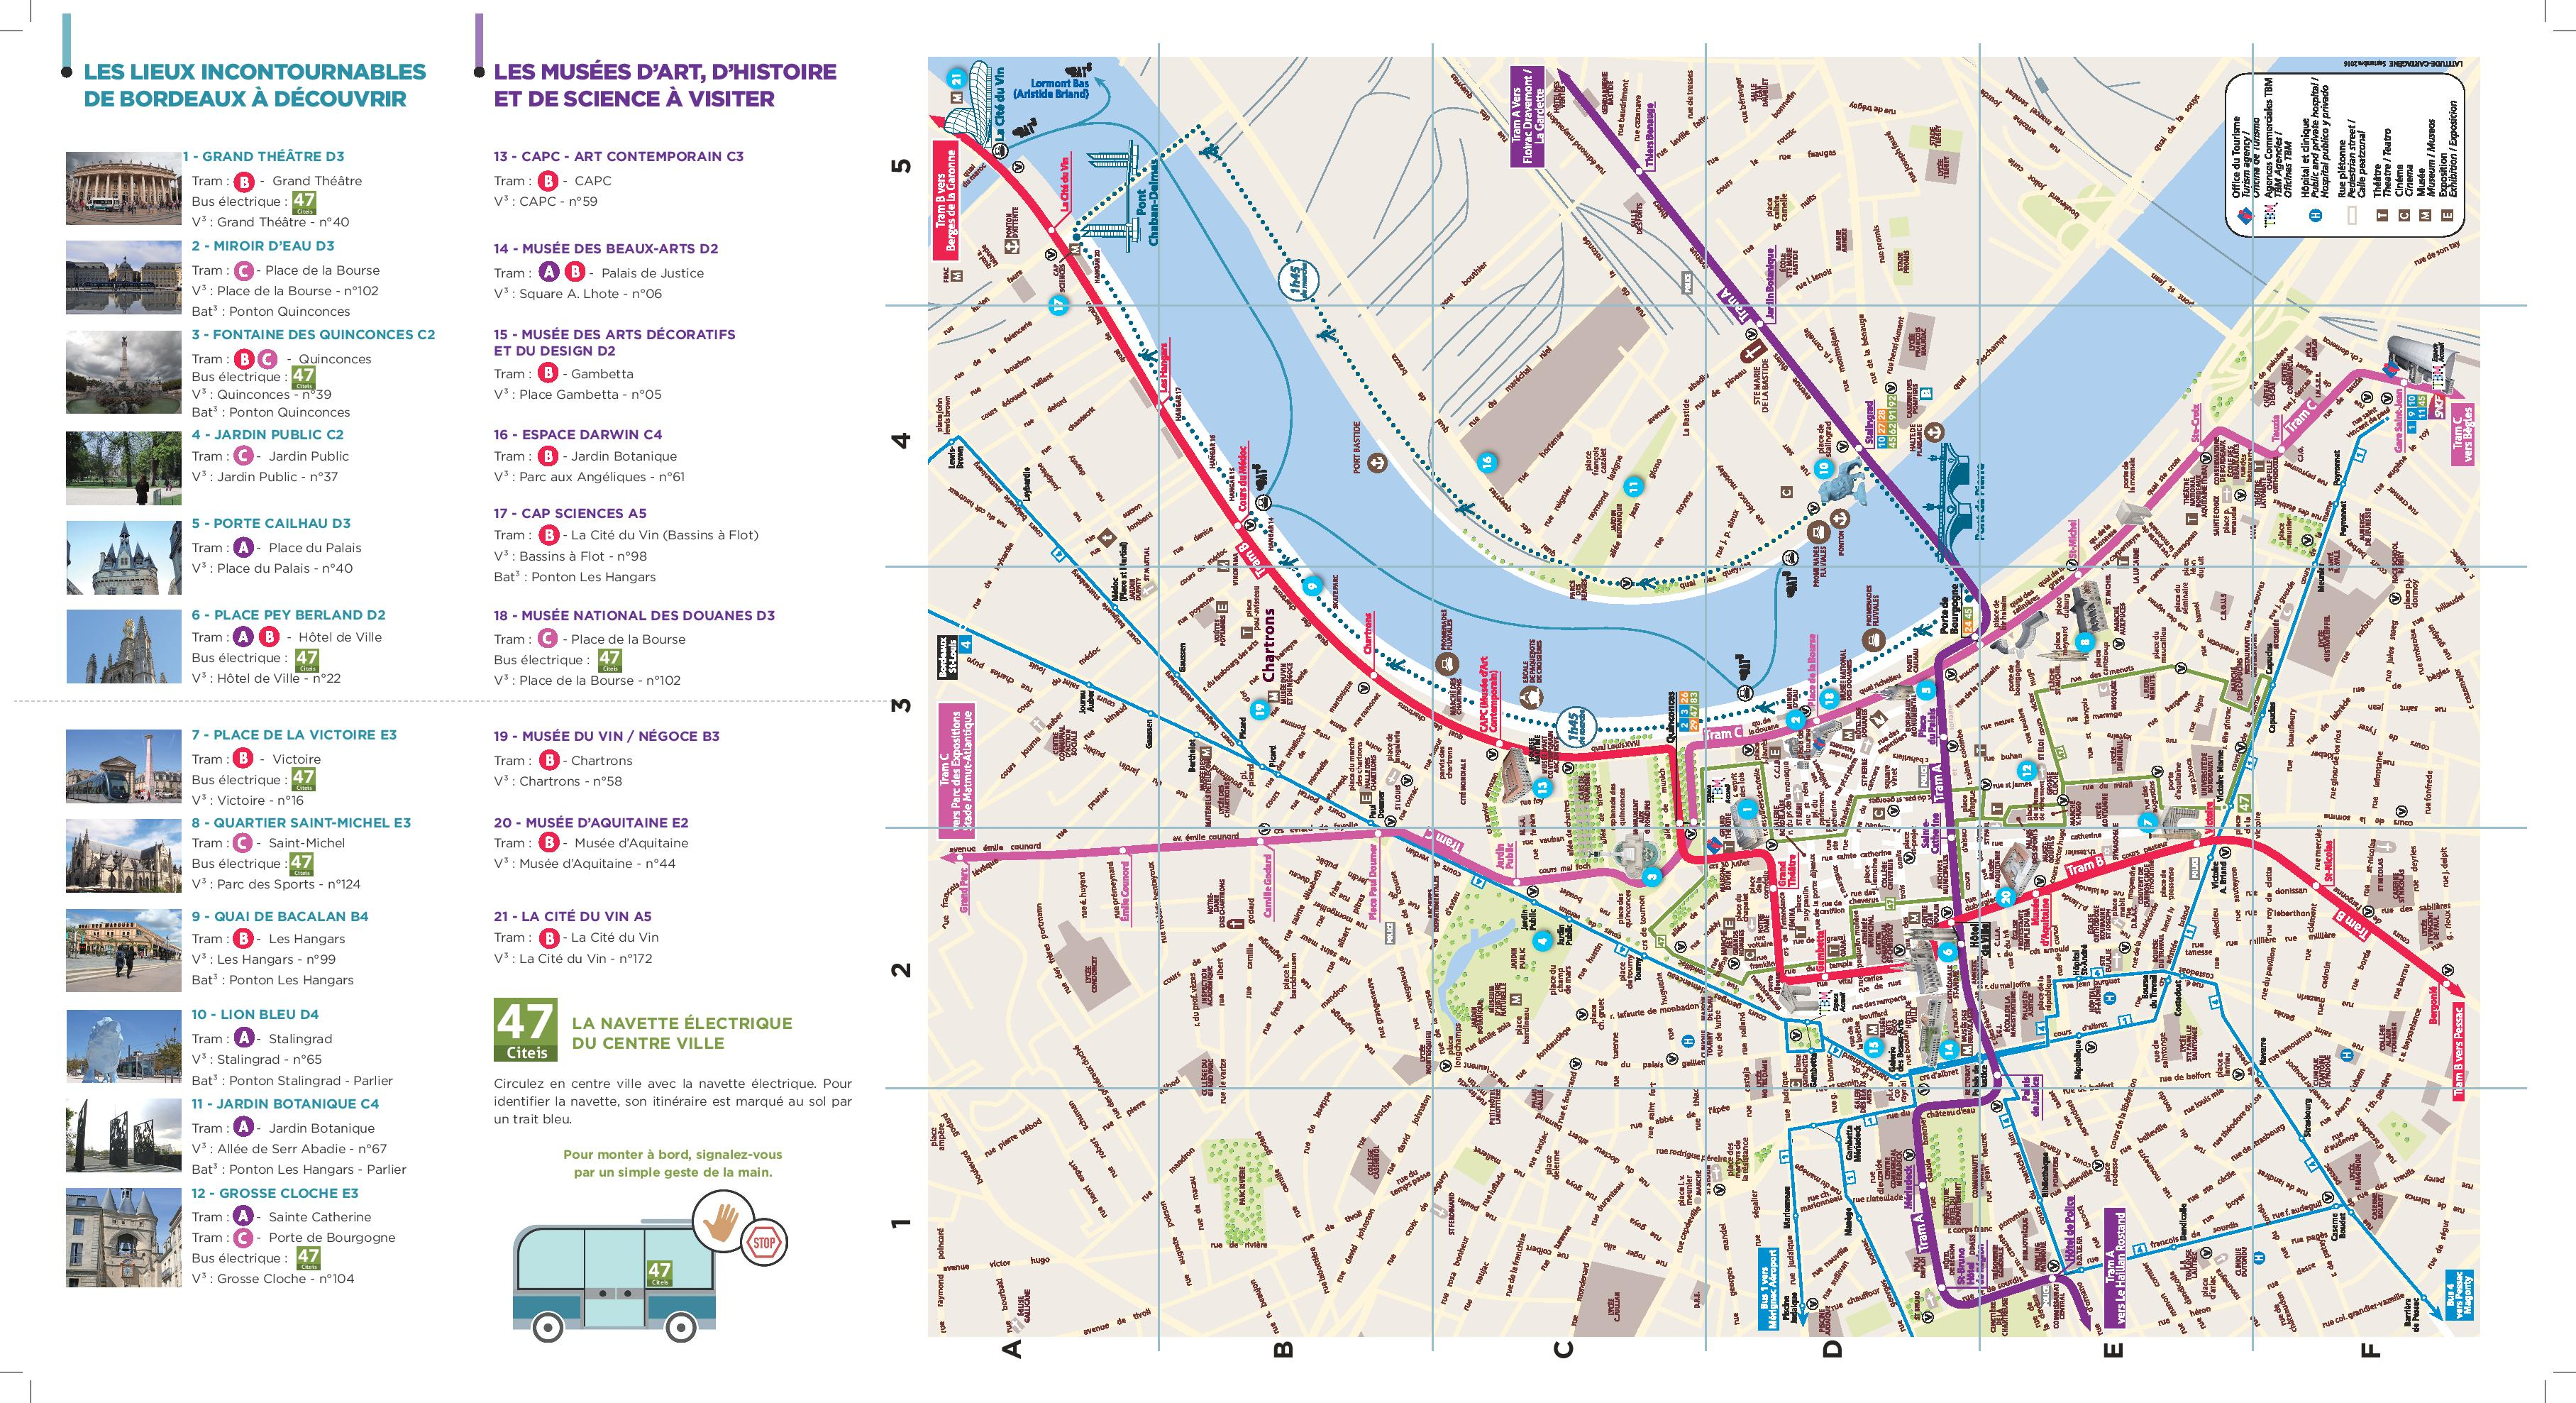 Carte touristique de Bordeaux